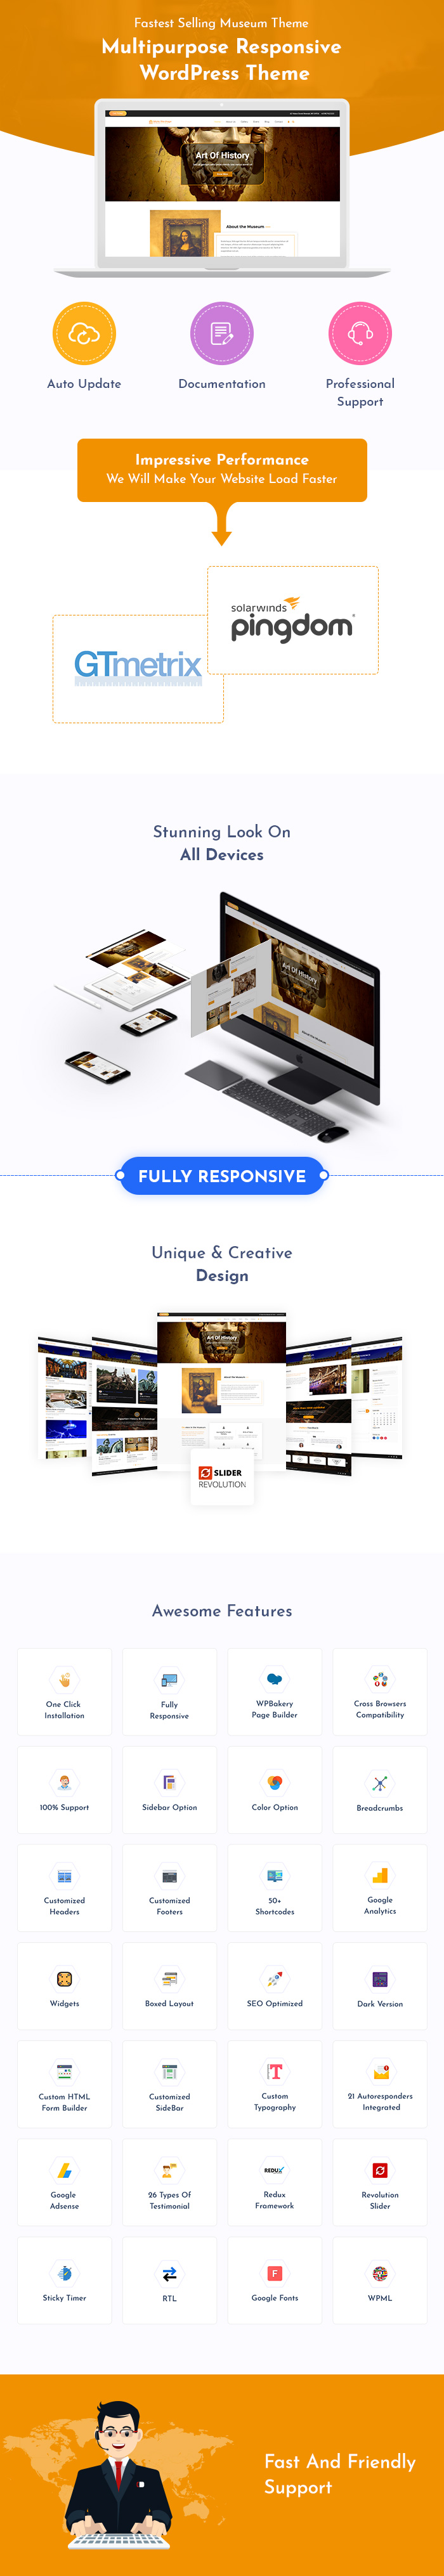 Museum, Art Gallery & Exhibition WordPress Themes